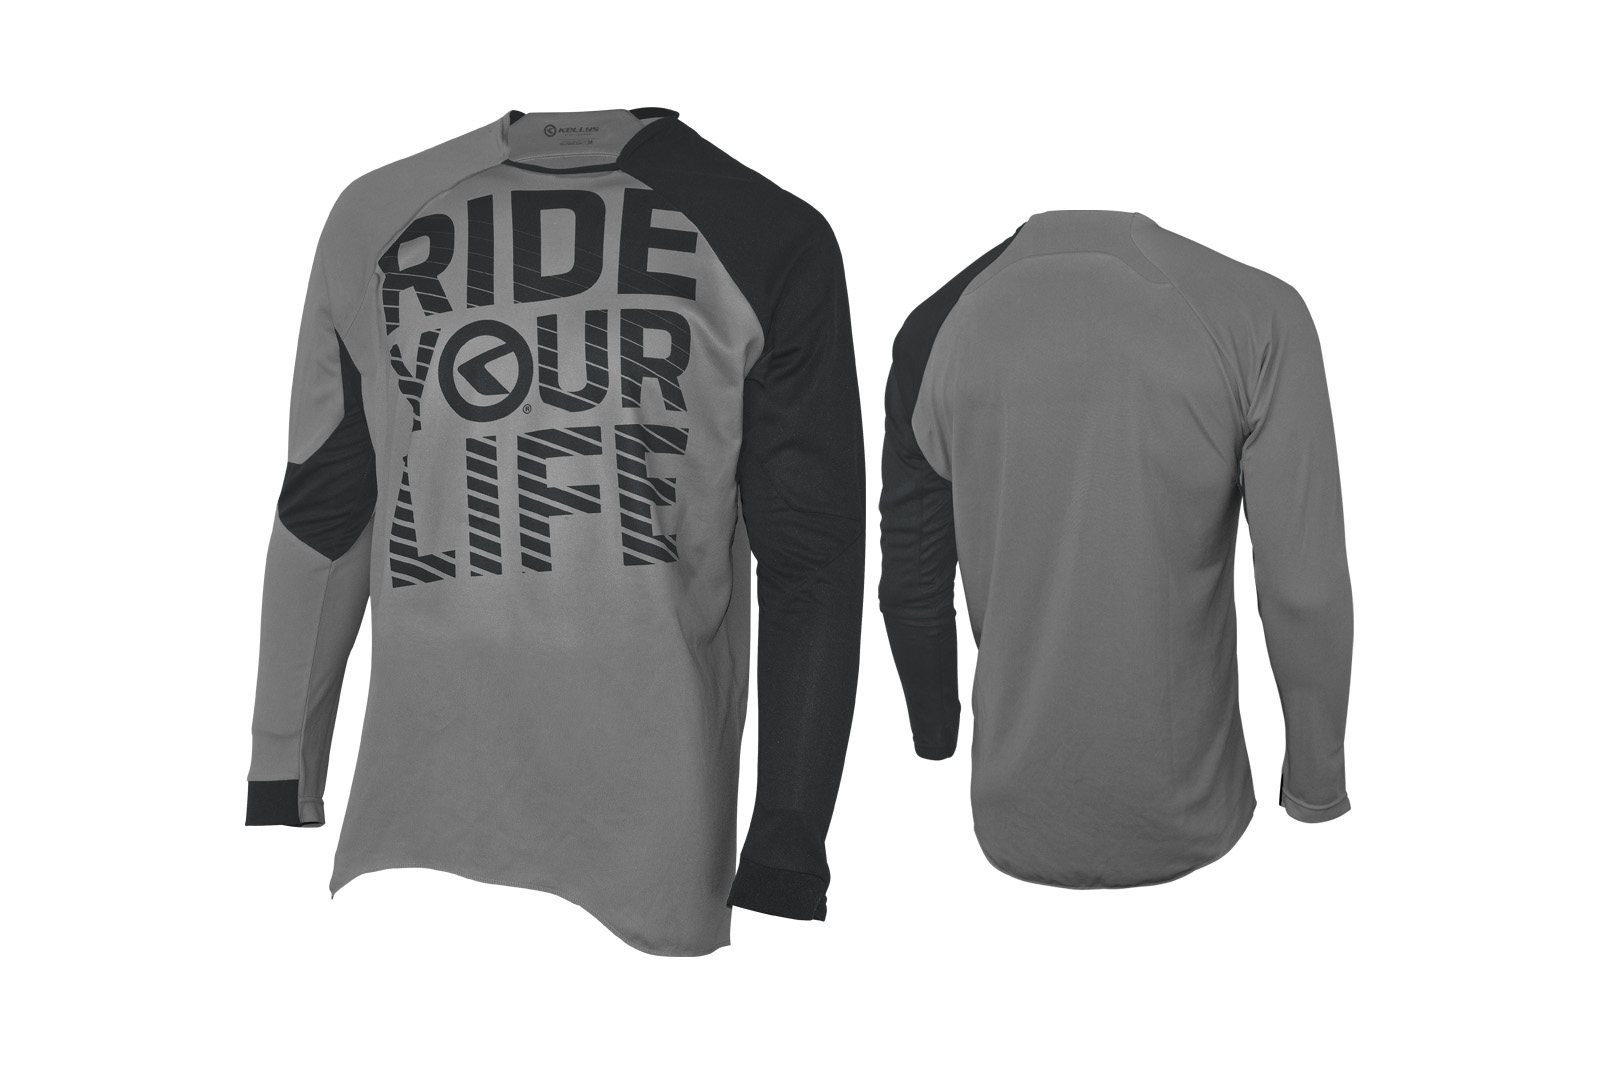 Langarmtrikot KELLYS RIDE YOUR LIFE grey - L - Langarmtrikot KELLYS RIDE YOUR LIFE grey - L